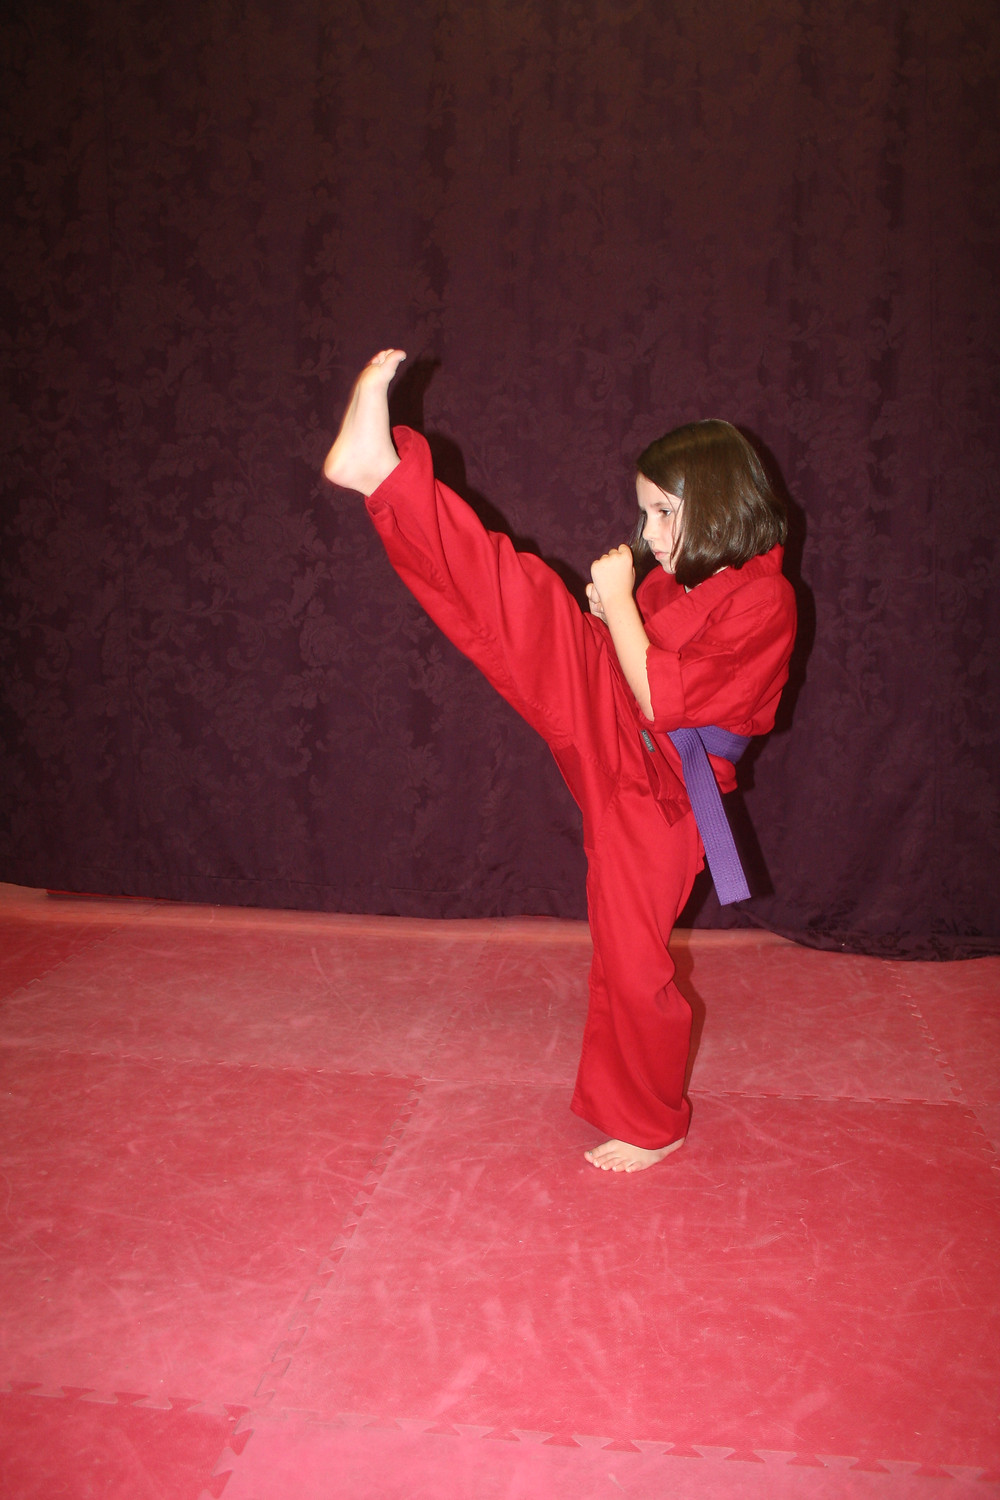 Raylee Vinson demonstrates an excellent front kick!